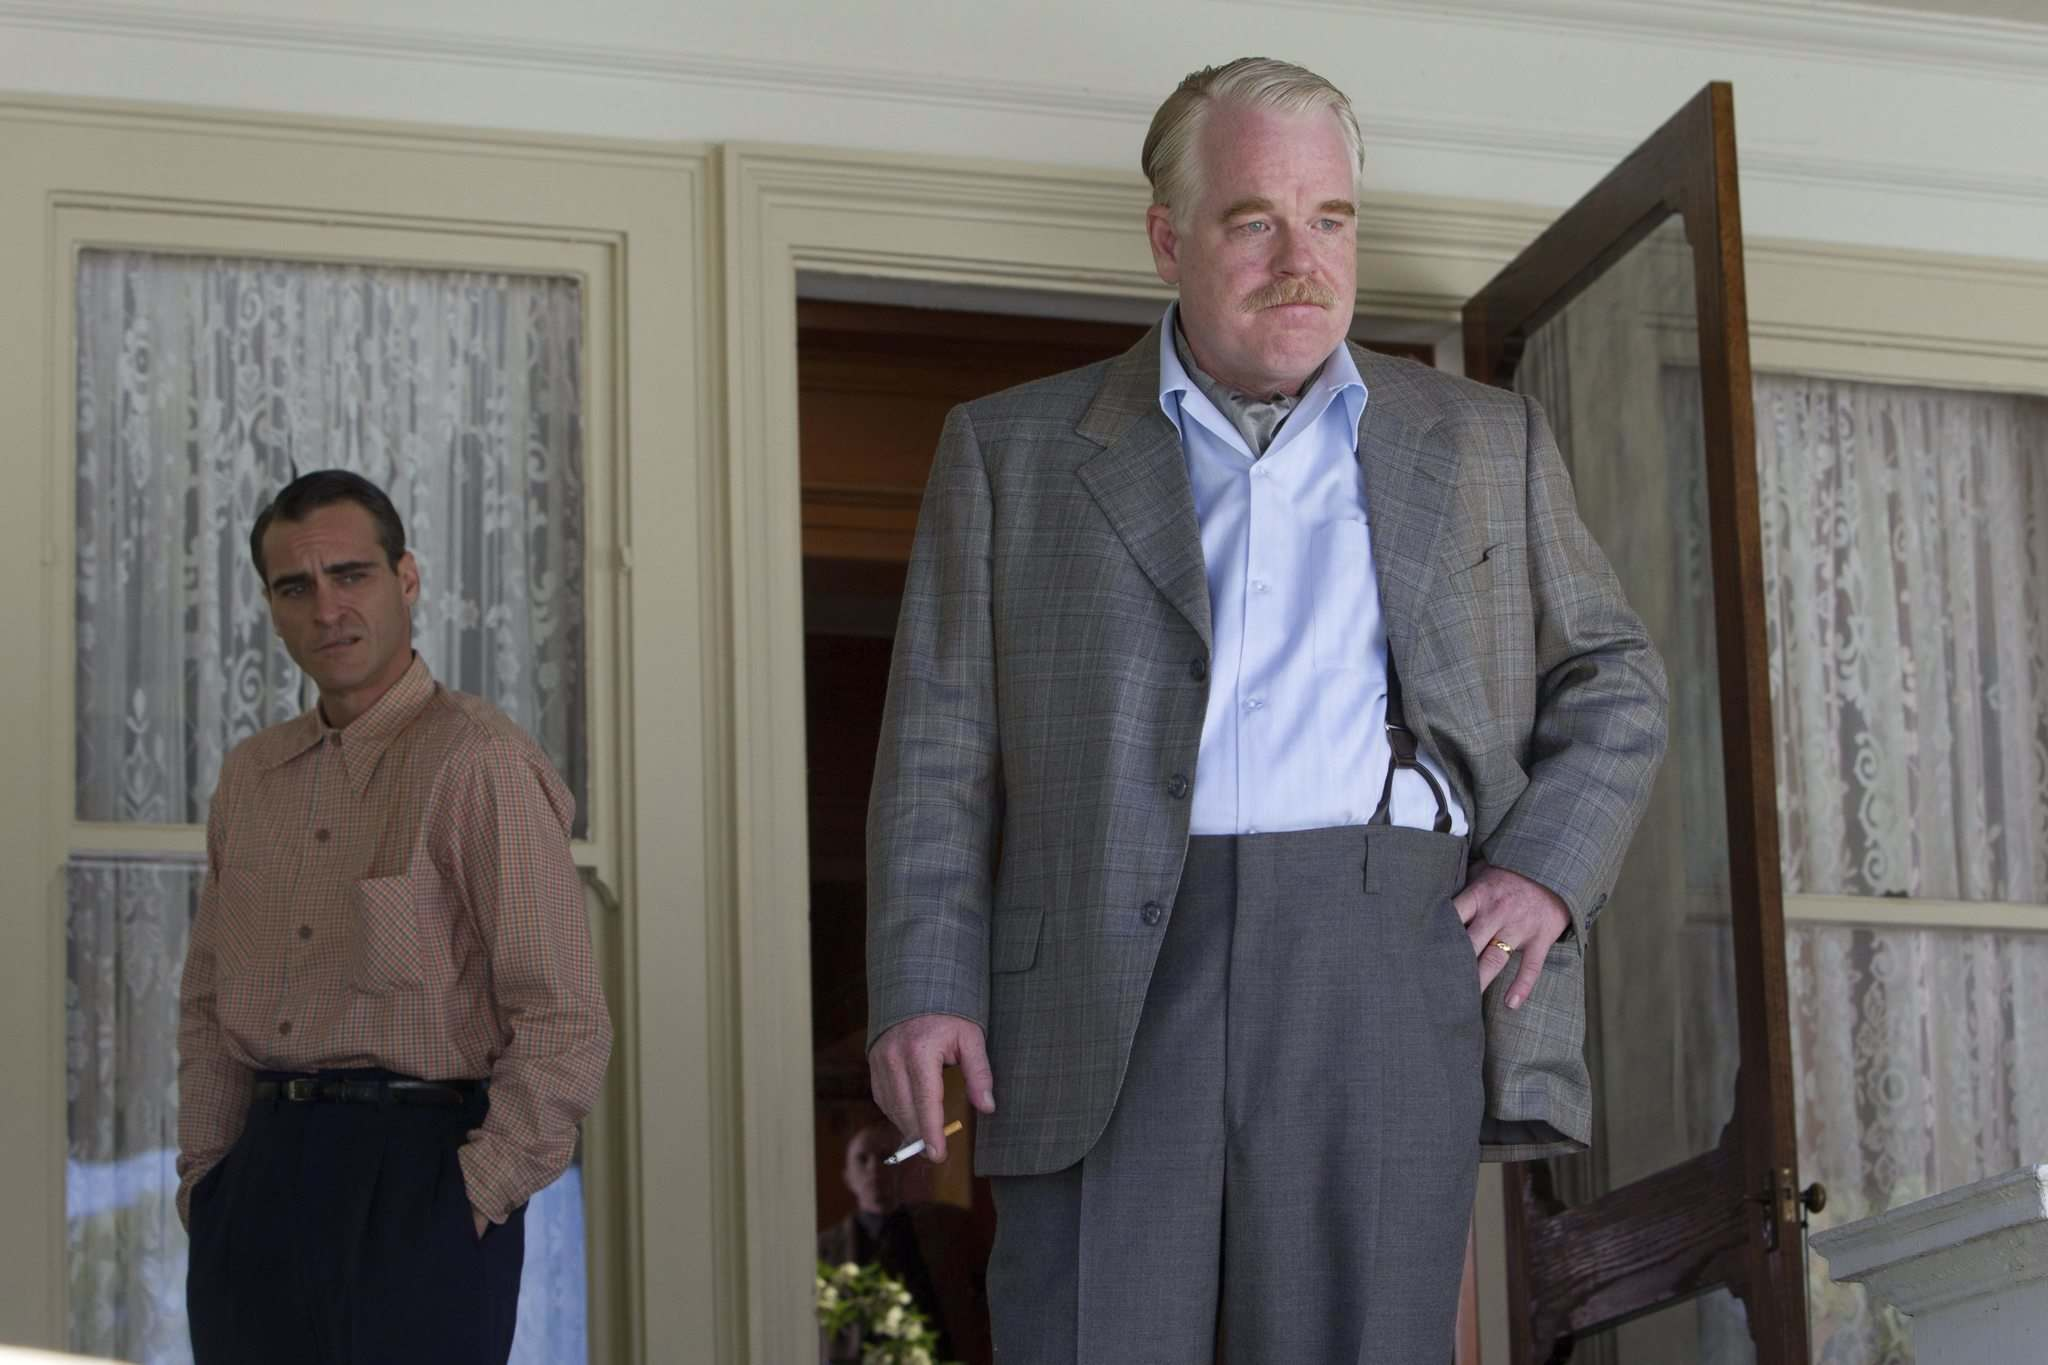 Joaquin Phoenix (left) and Philip Seymour Hoffman in The Master. (The Weinstein Company)